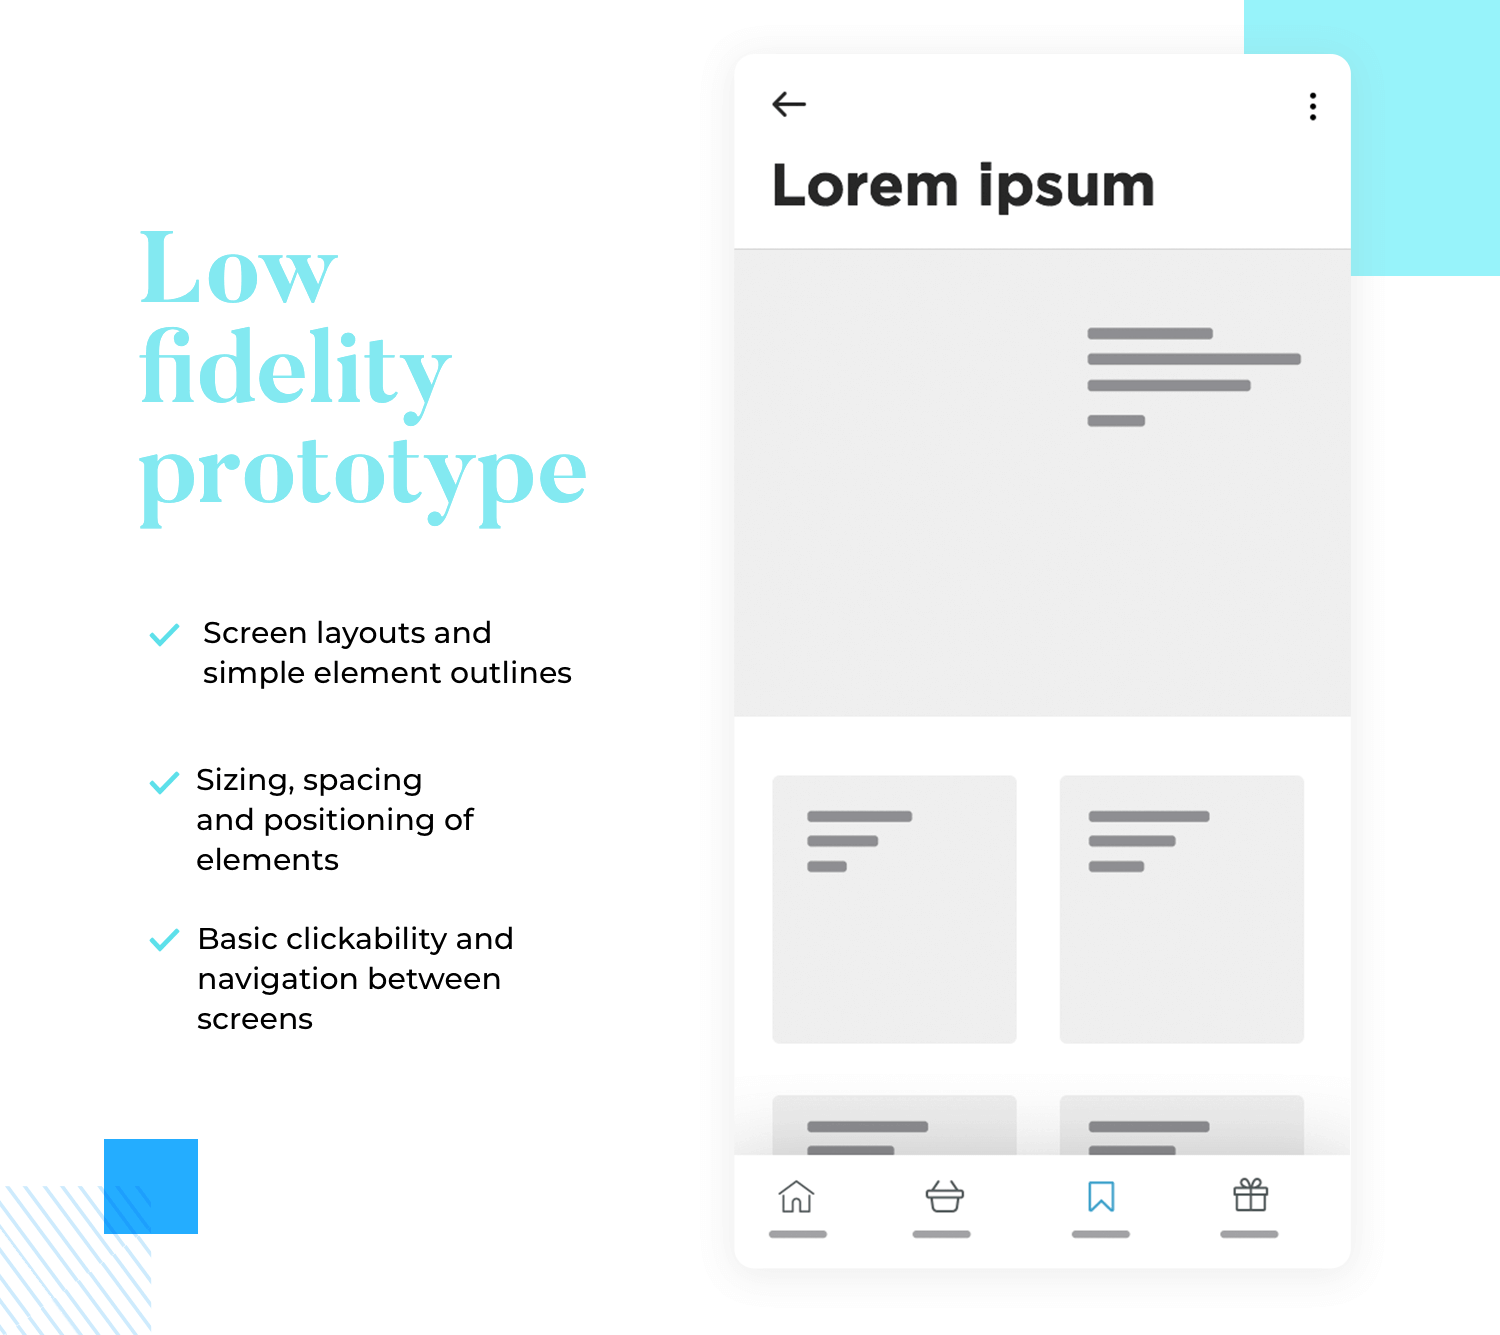 Prototyping - low fidelity wireframe